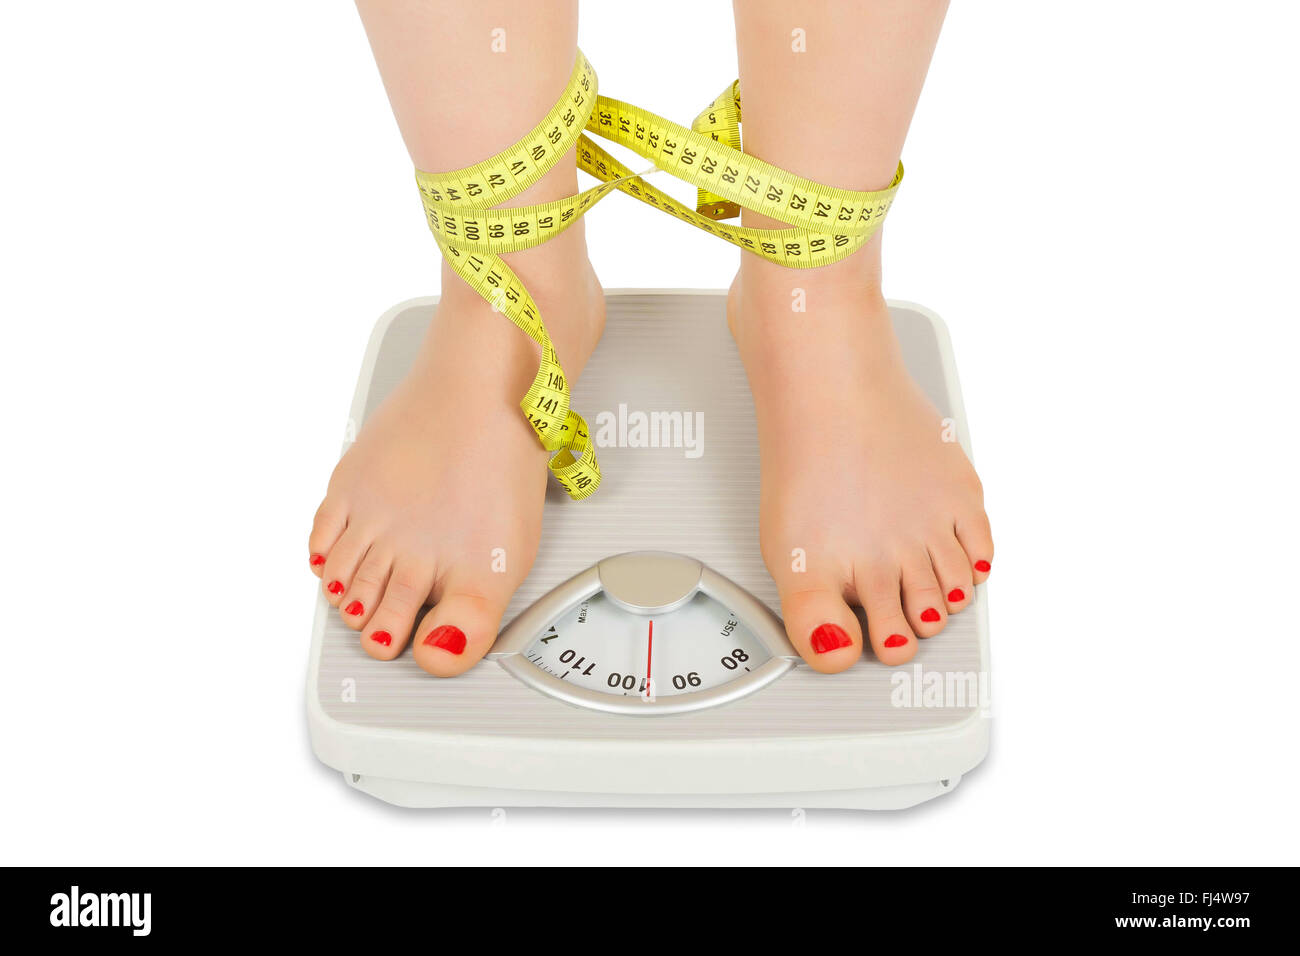 Photo of female foot on bathroom scale tied with tape meter isolated on white background - Stock Image